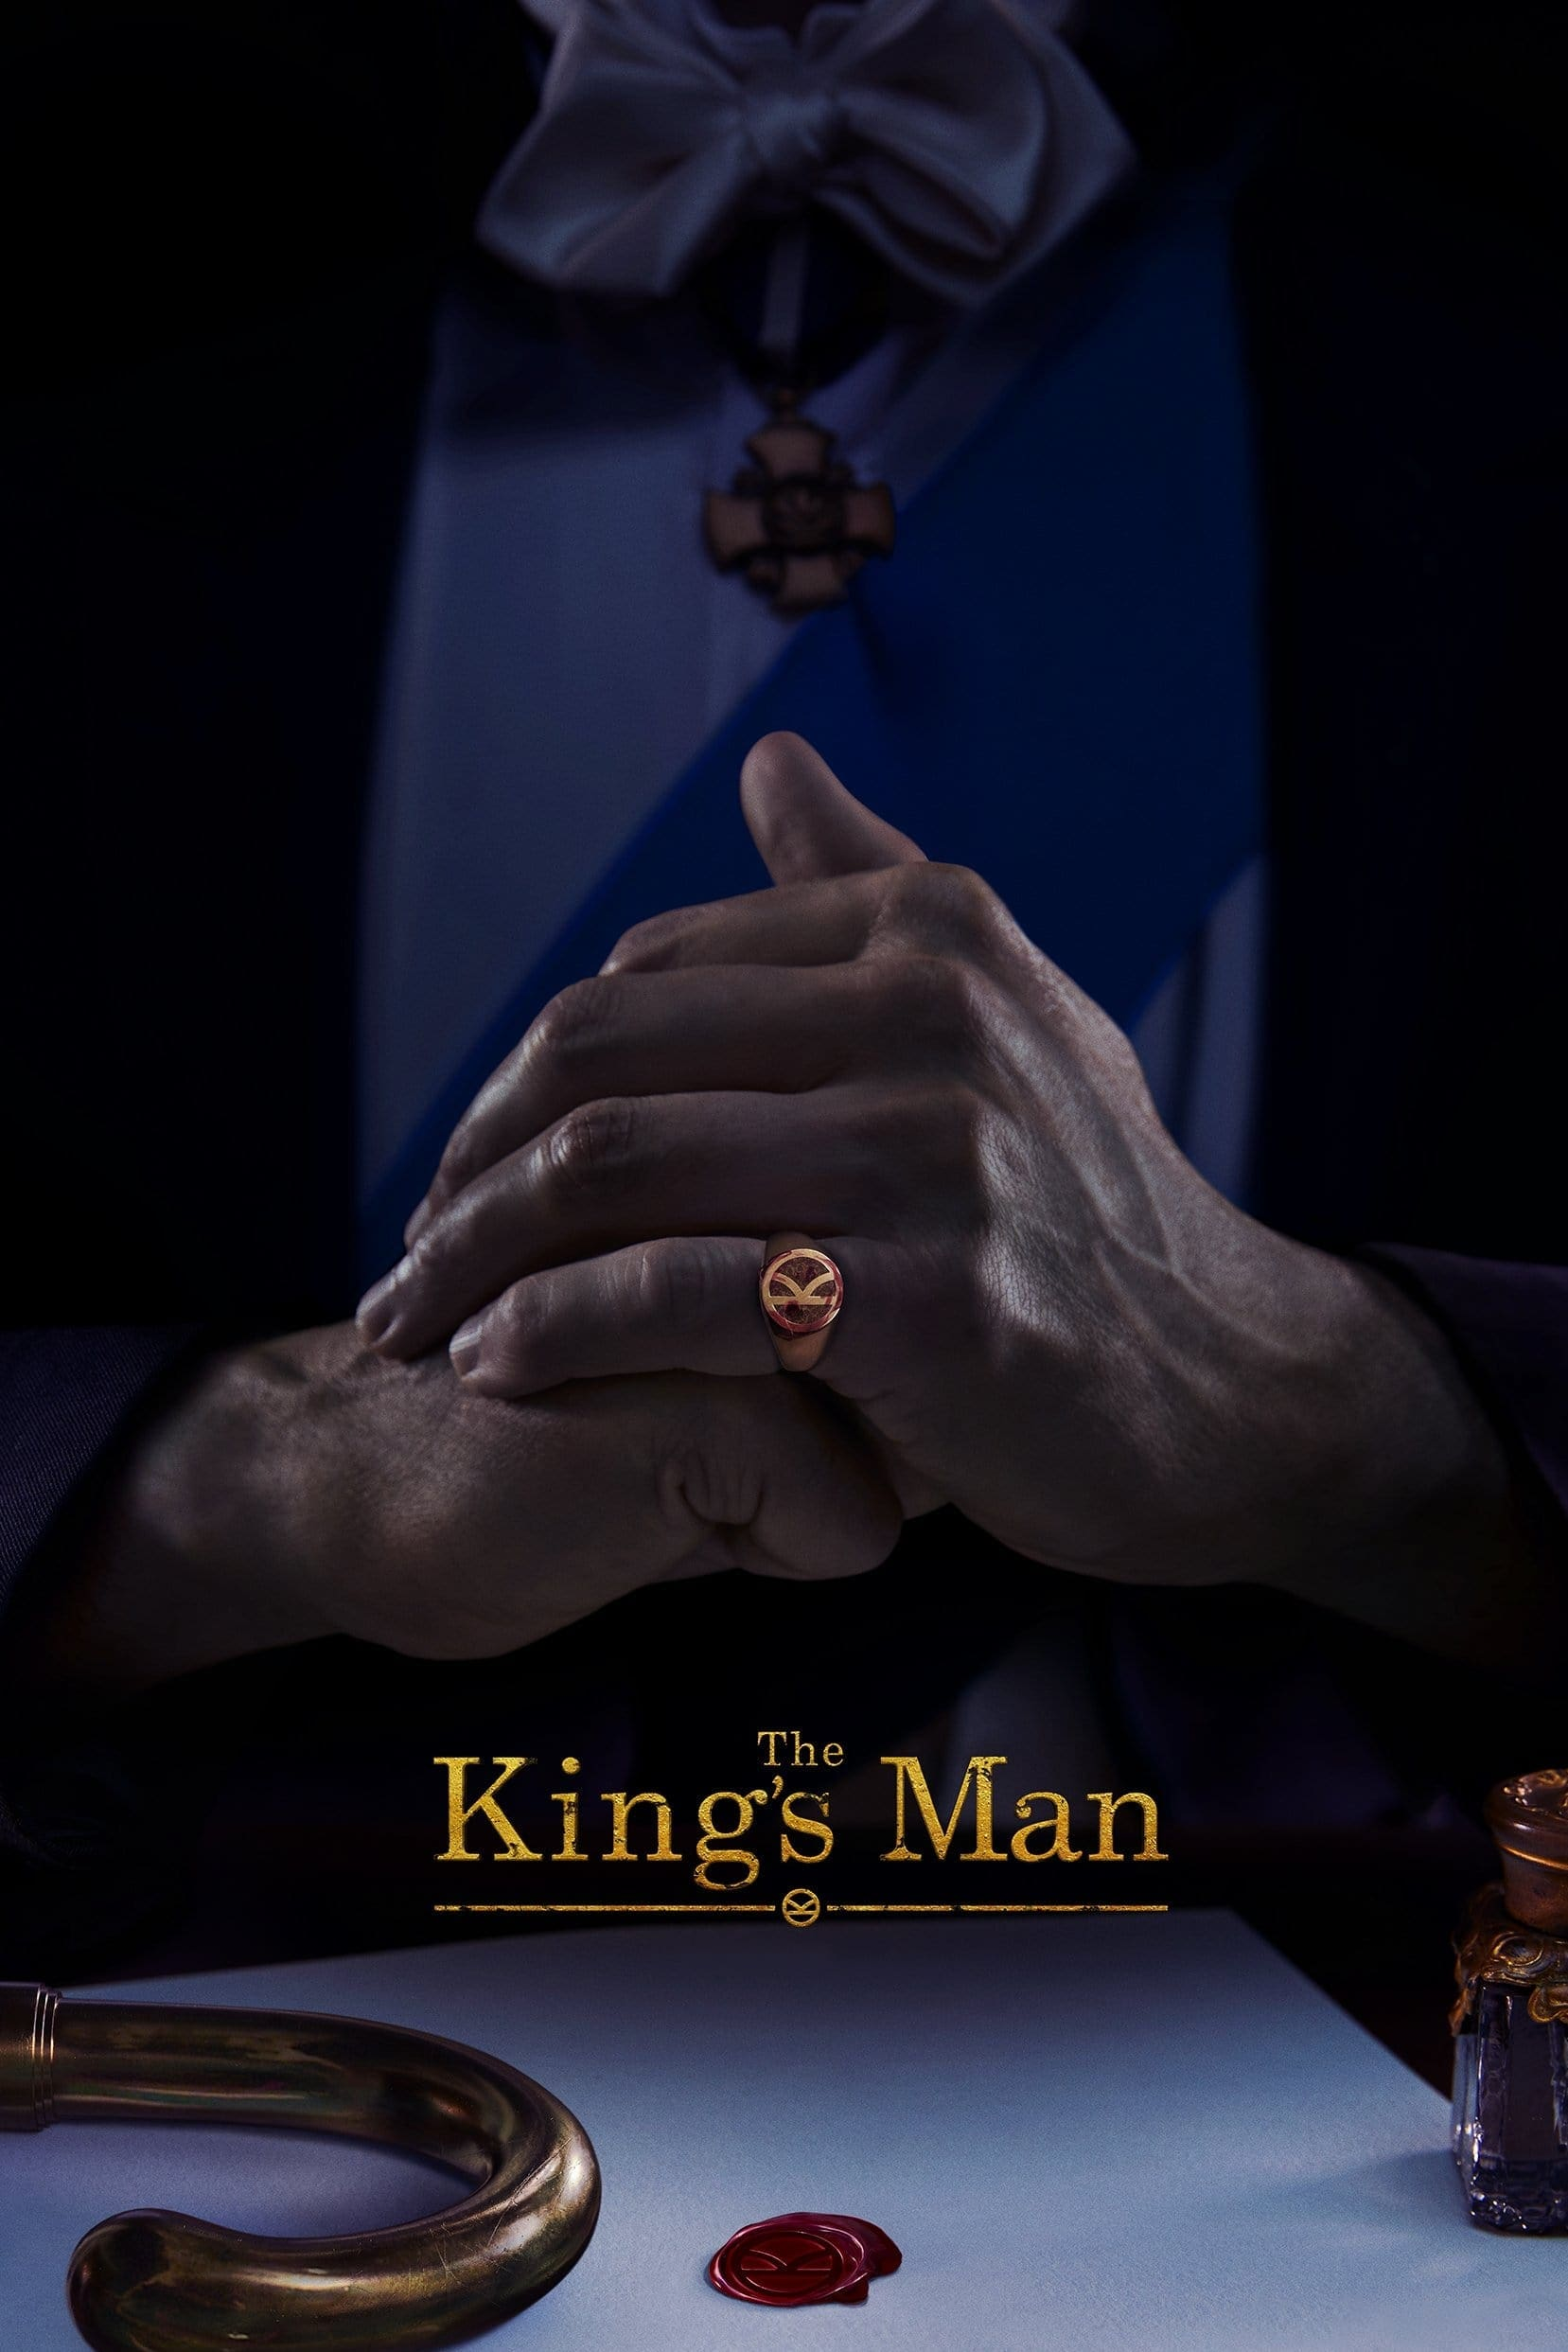 The King's Man (2020) Official Trailer #1